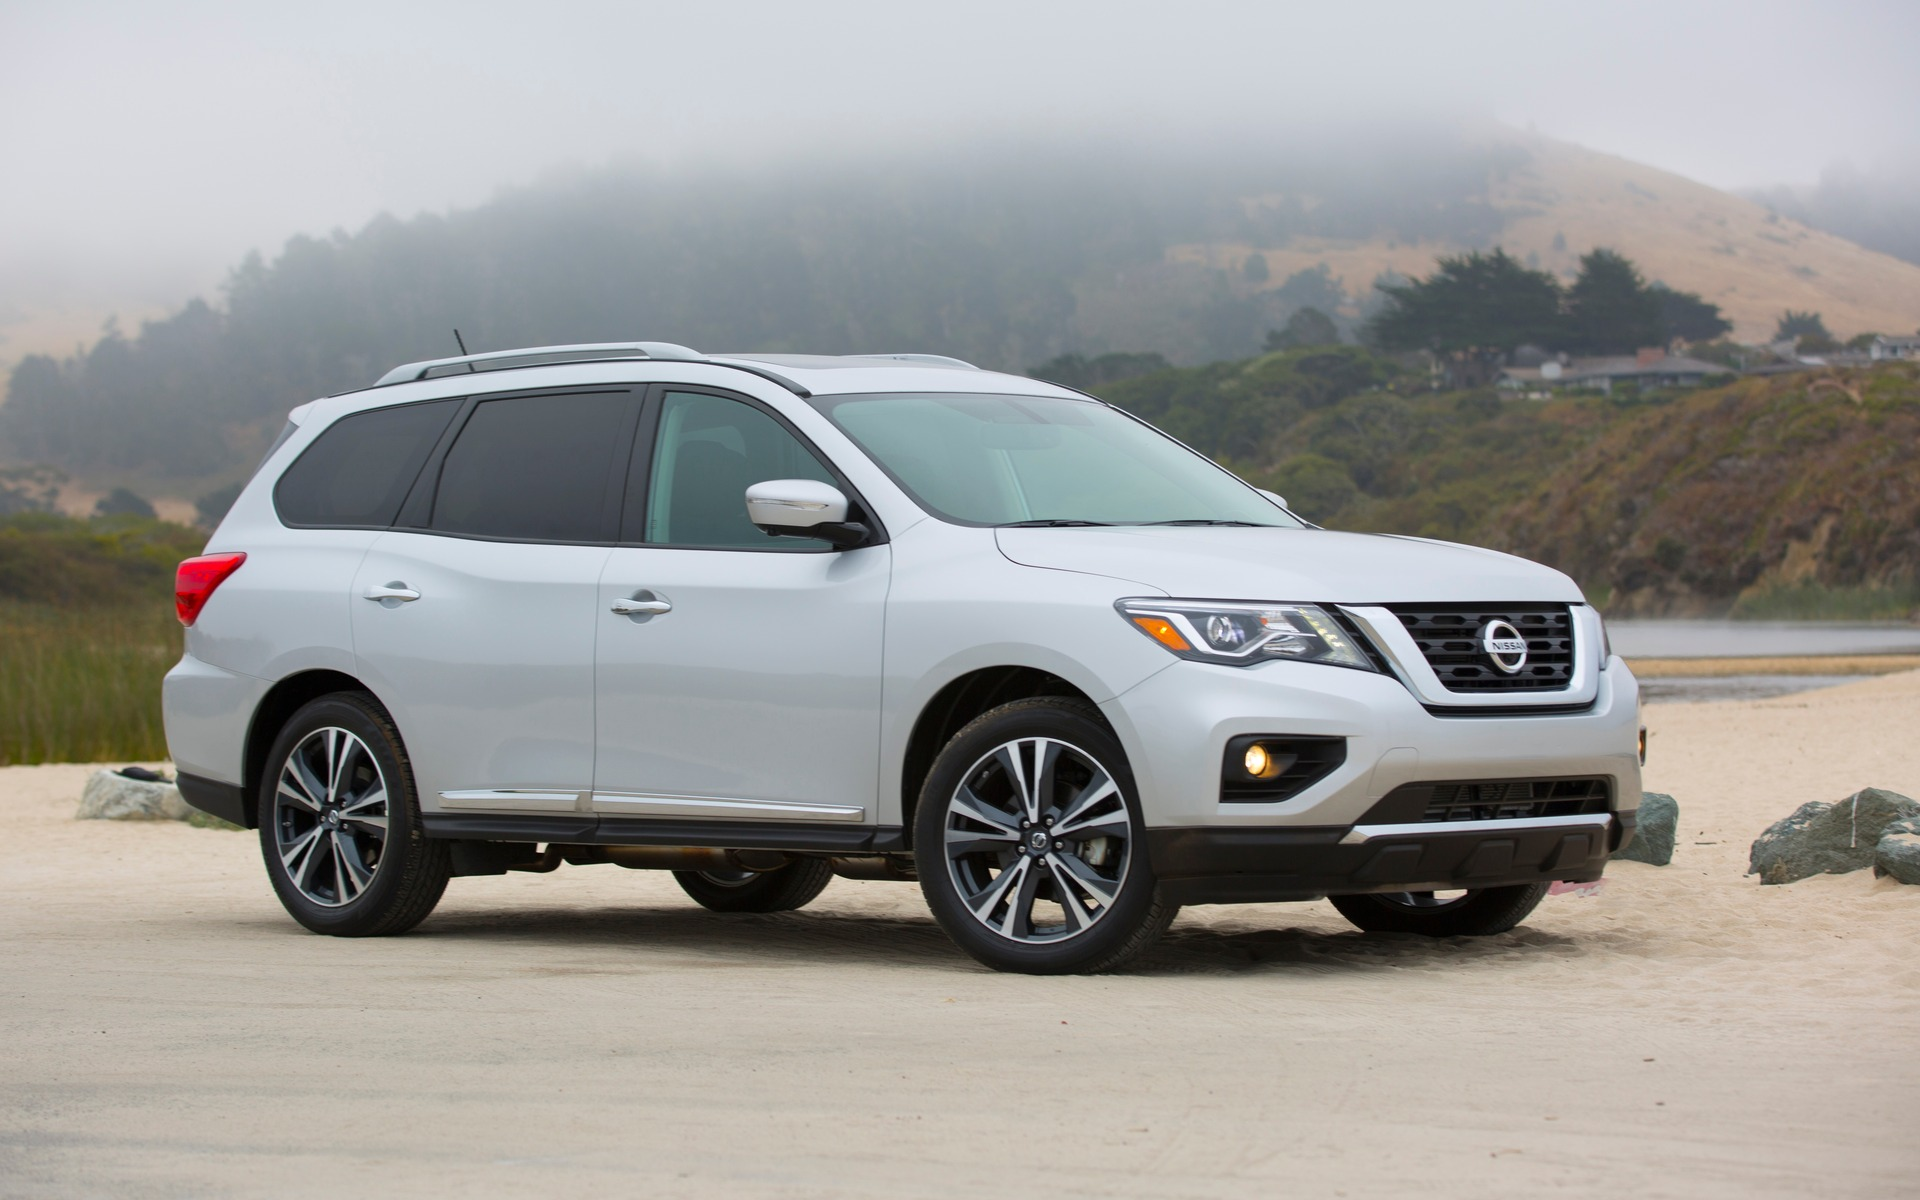 Nissan Pathfinder towing Capacity